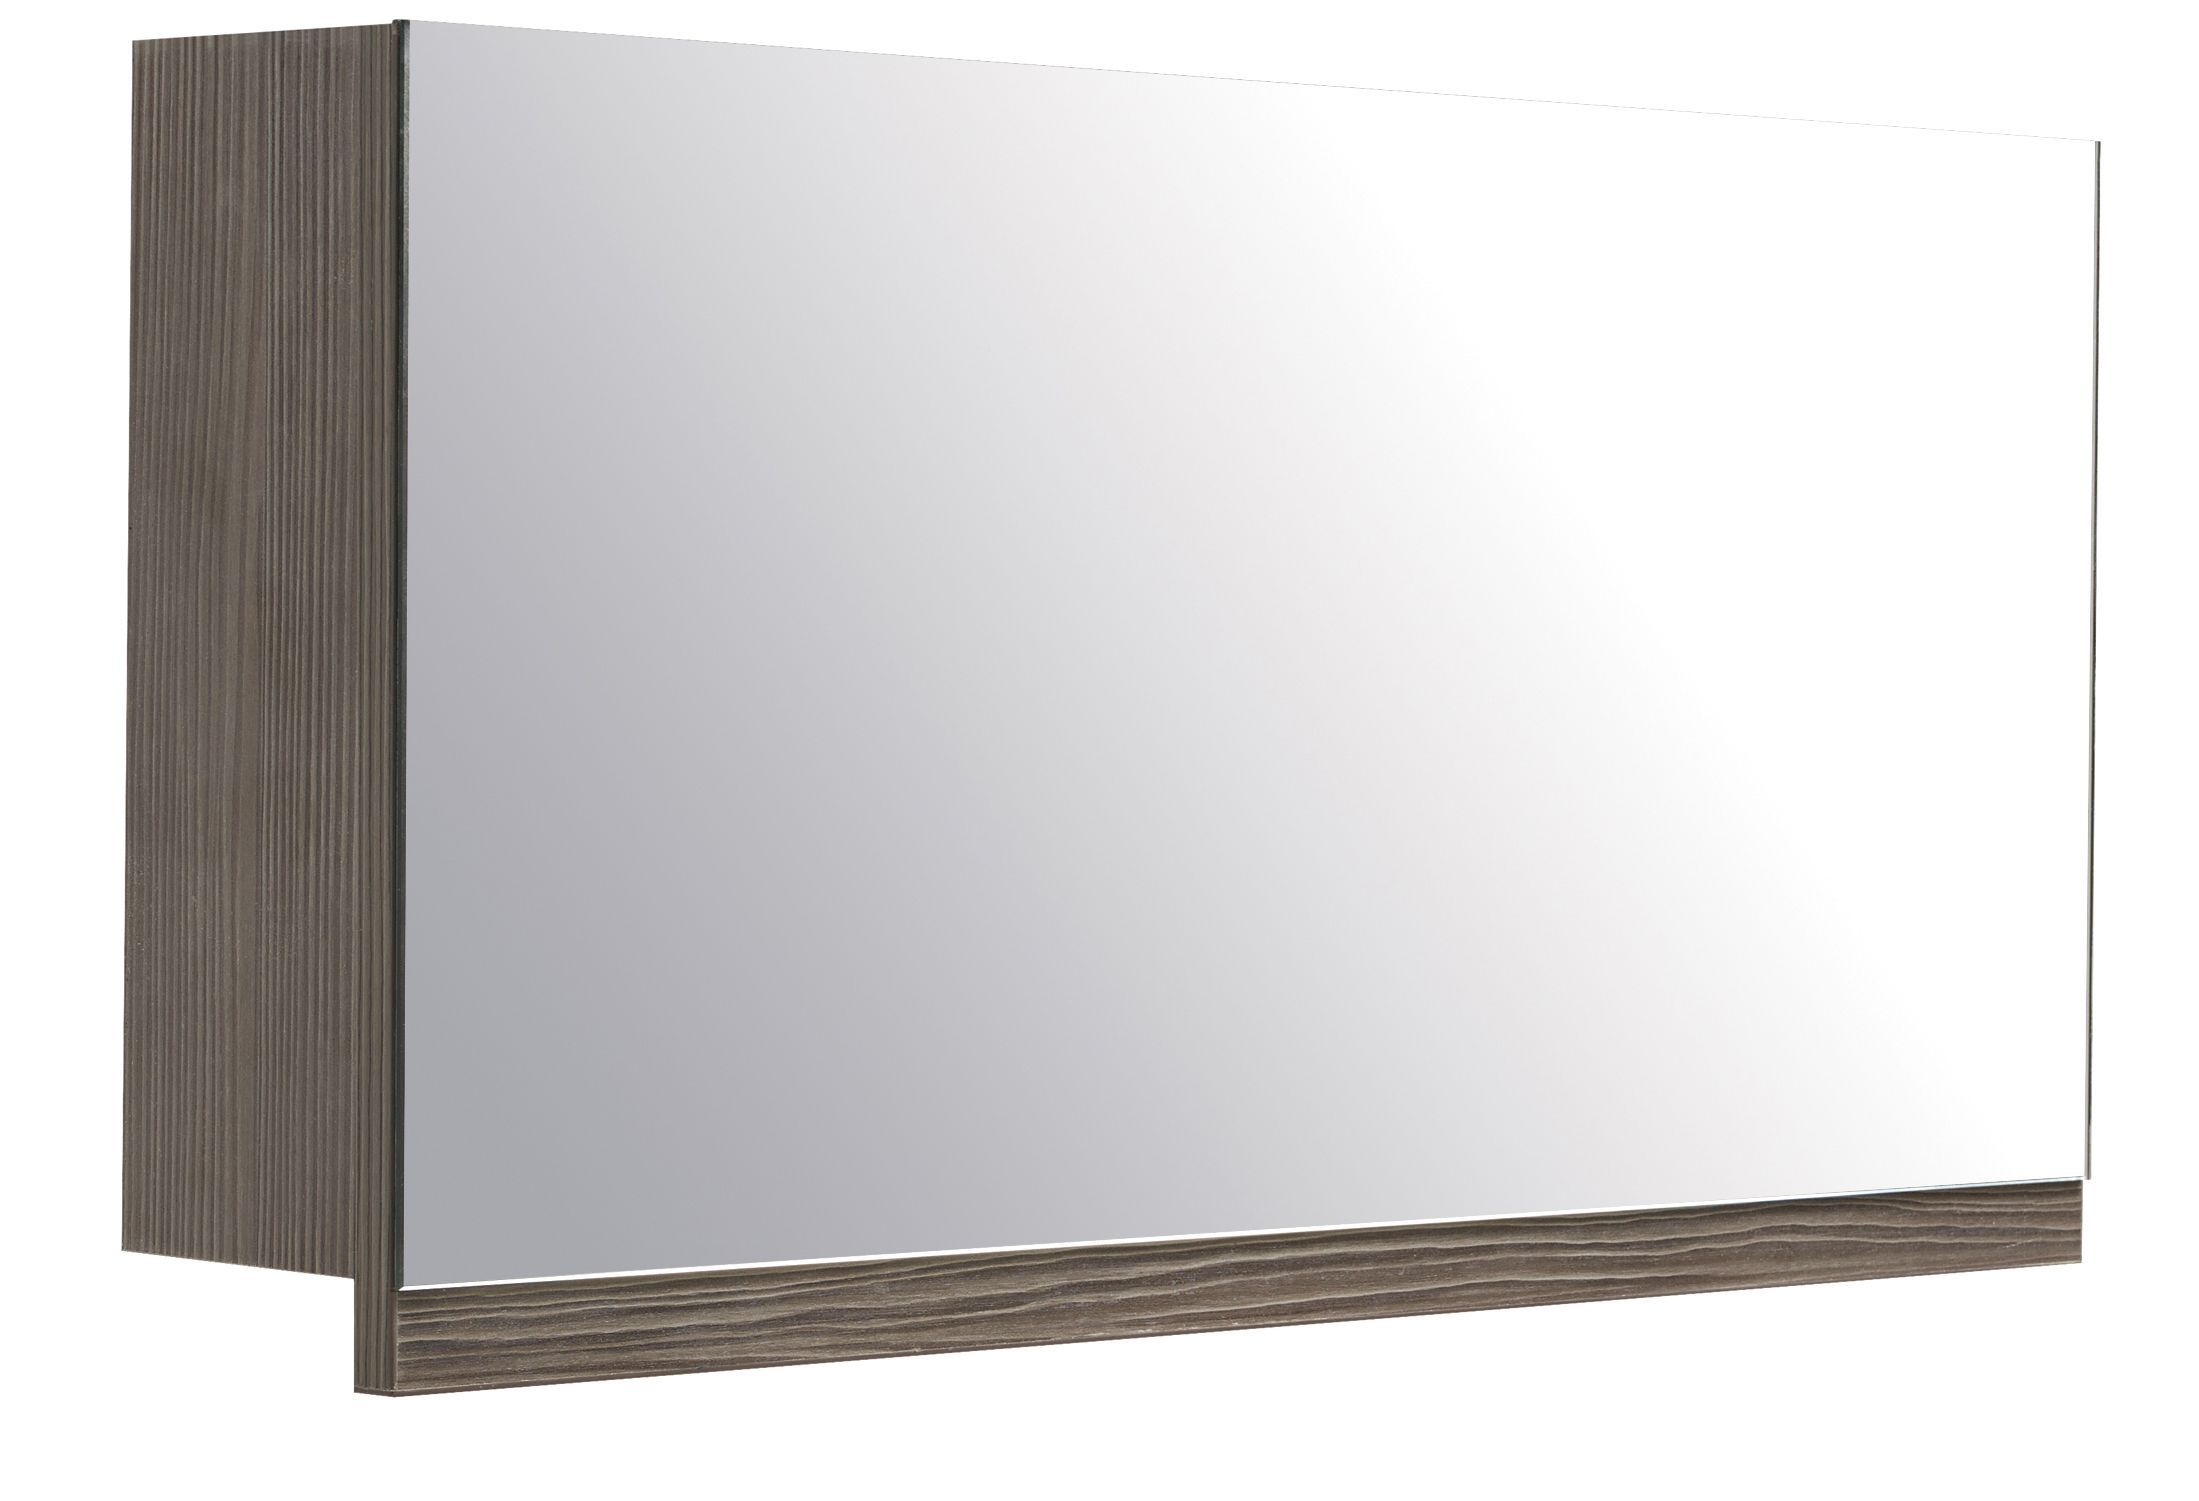 Cooke Lewis Ardesio Single Door Bodega Grey Mirror Cabinet  # Muebles Cic Bodega